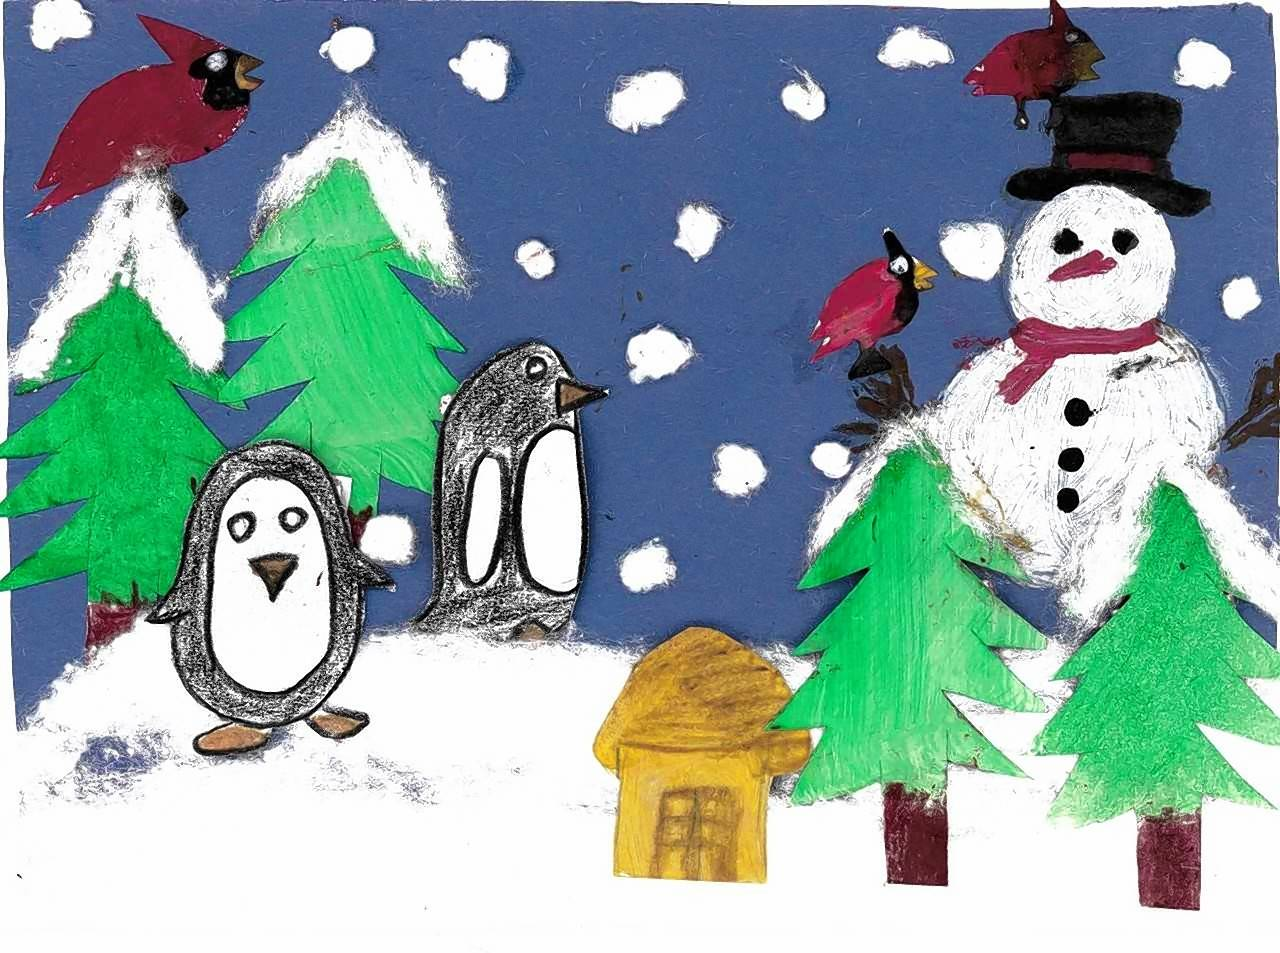 Ashir Arsalan, a second-grader, won first place in the District 62 Winter Card Contest with this entry.